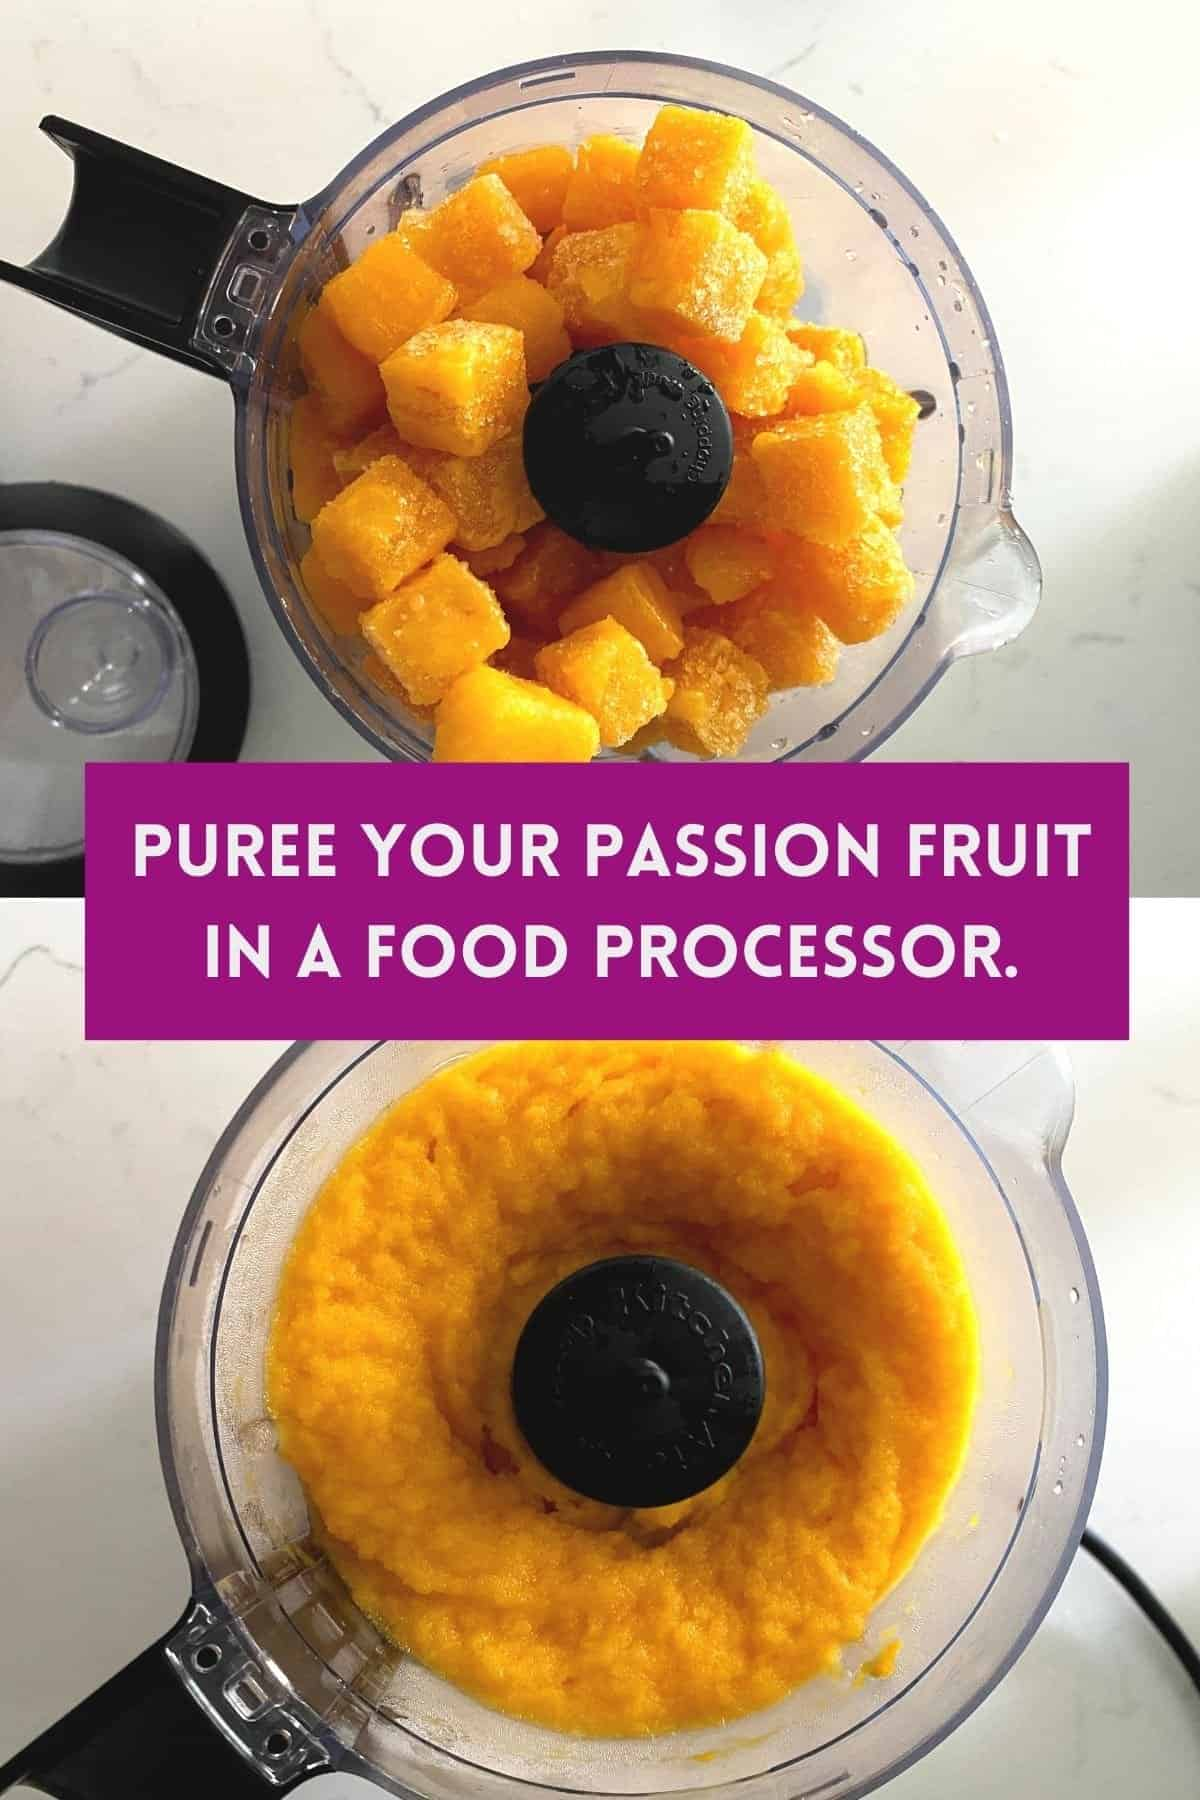 Frozen passion fruit blended into a puree in food processor.